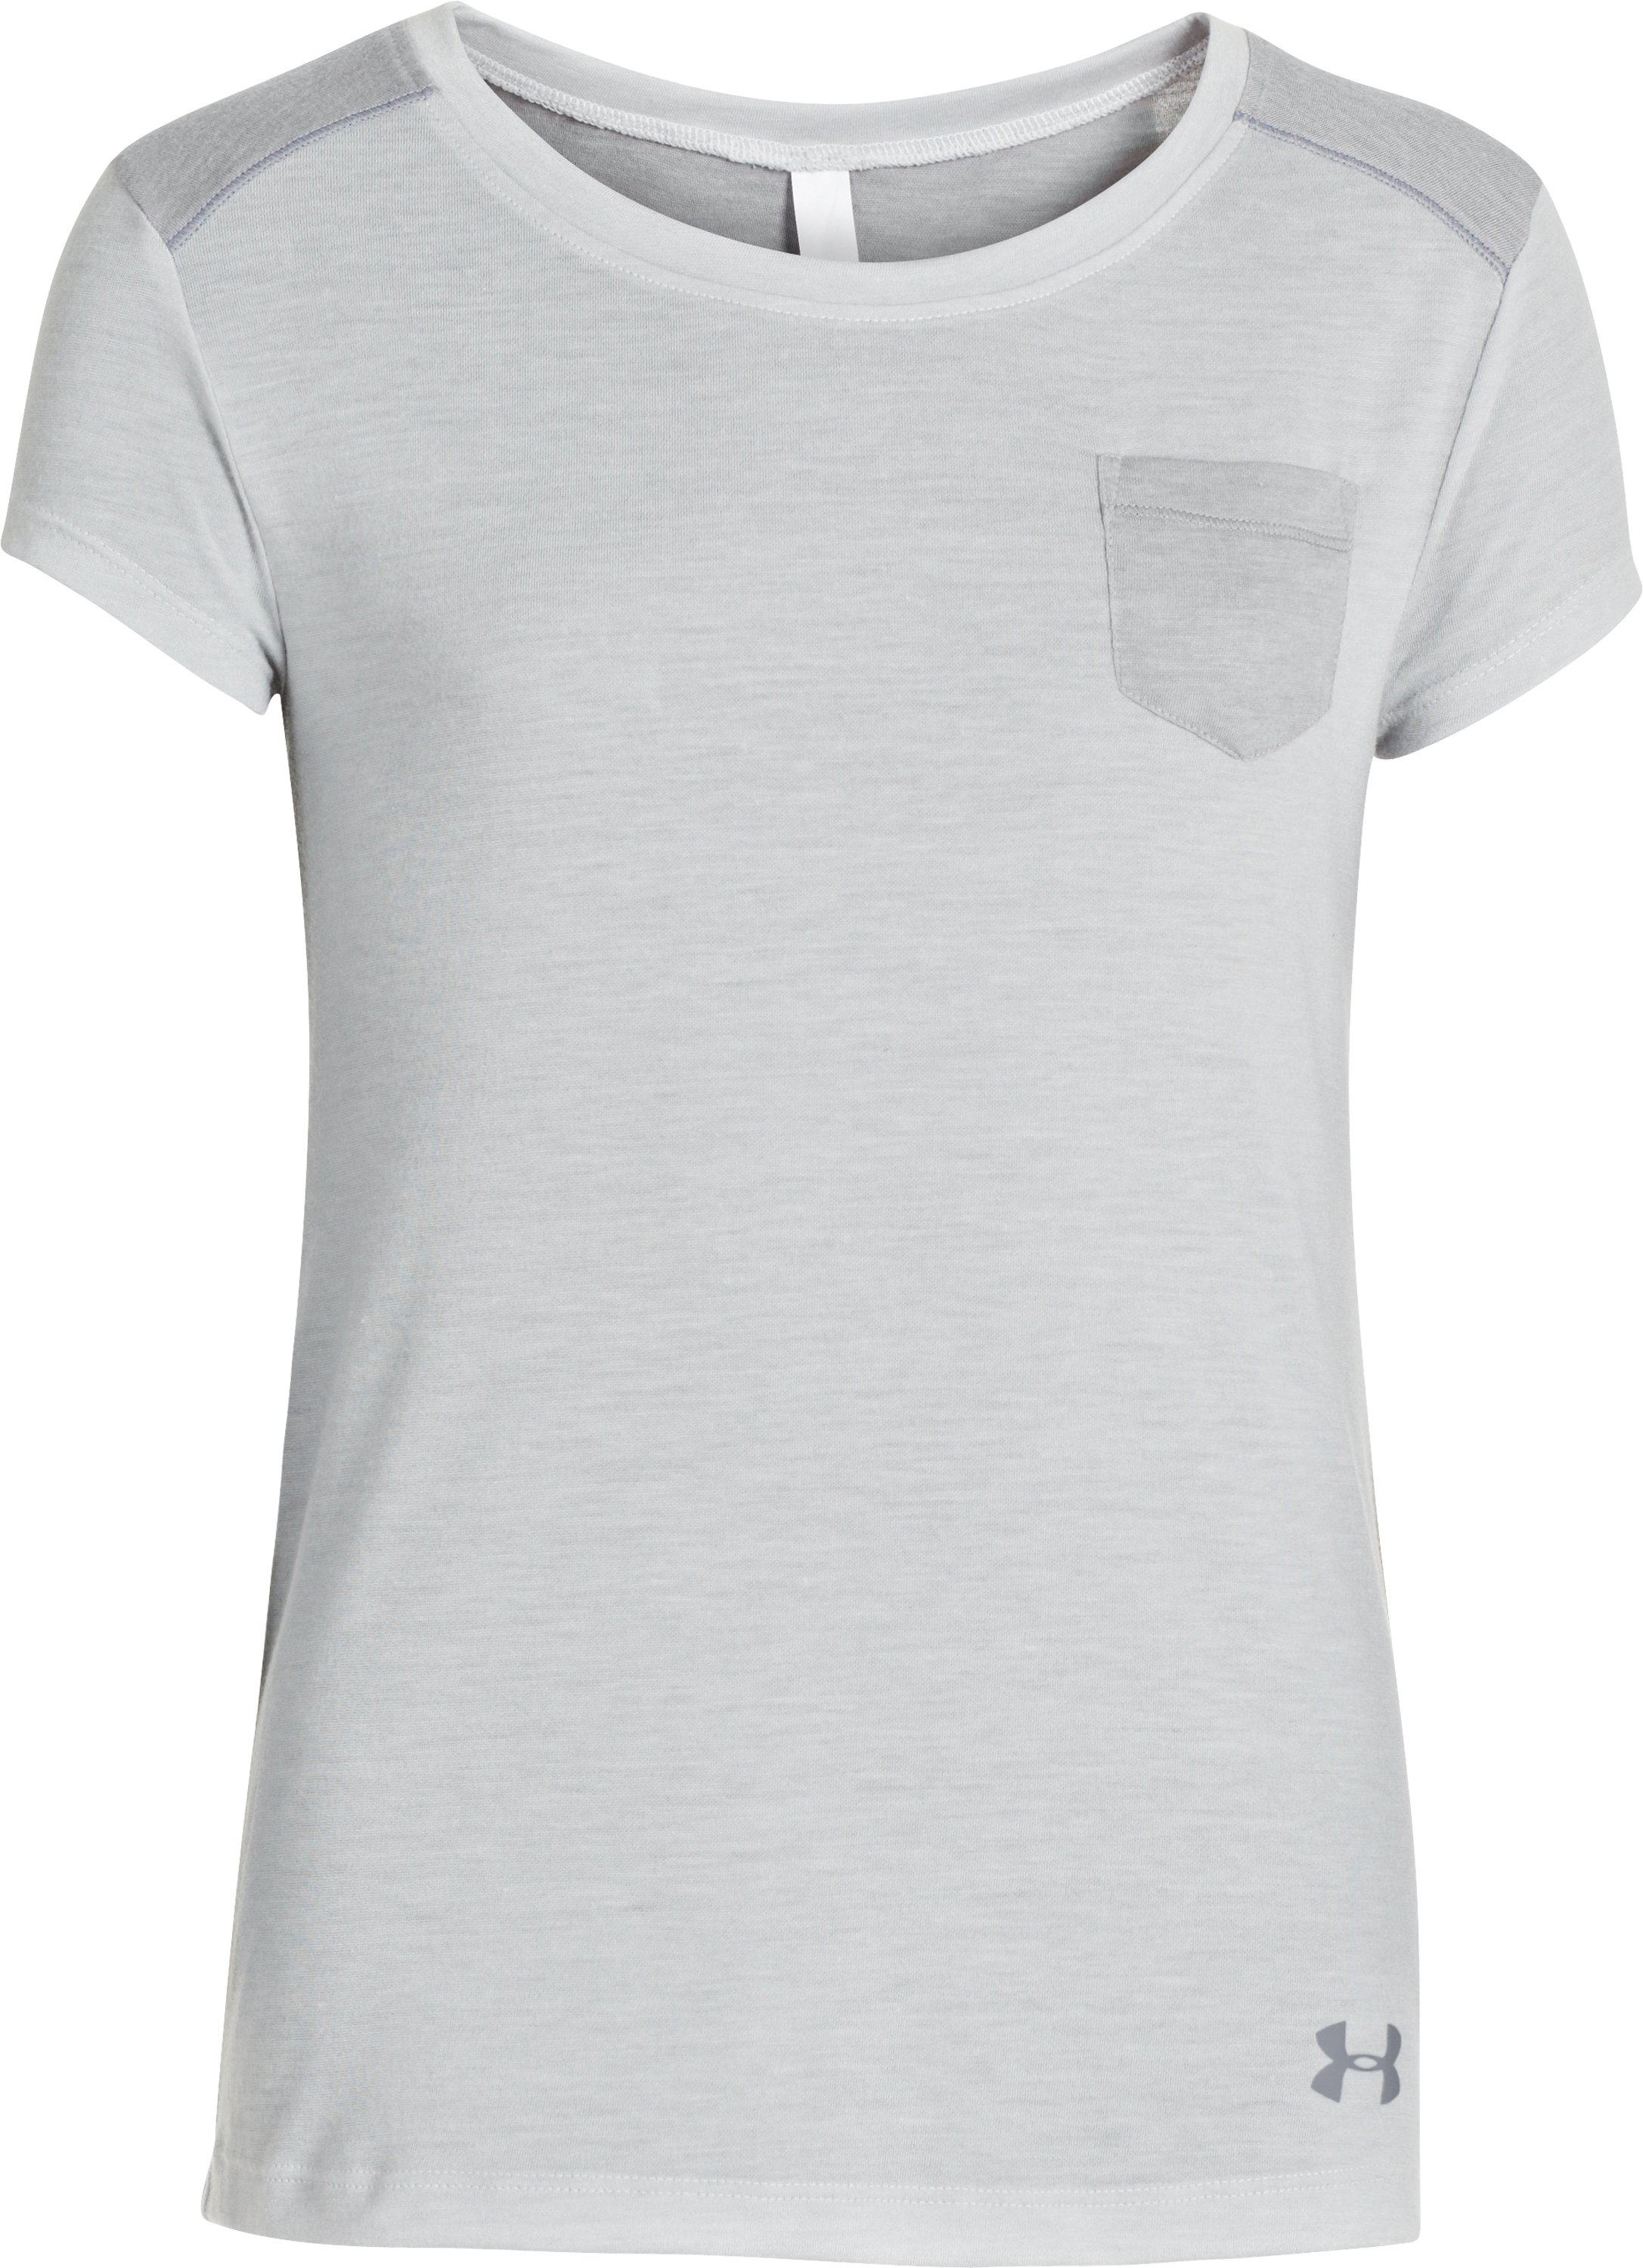 Girls' UA Studio Pocket T-Shirt, Silver Heather